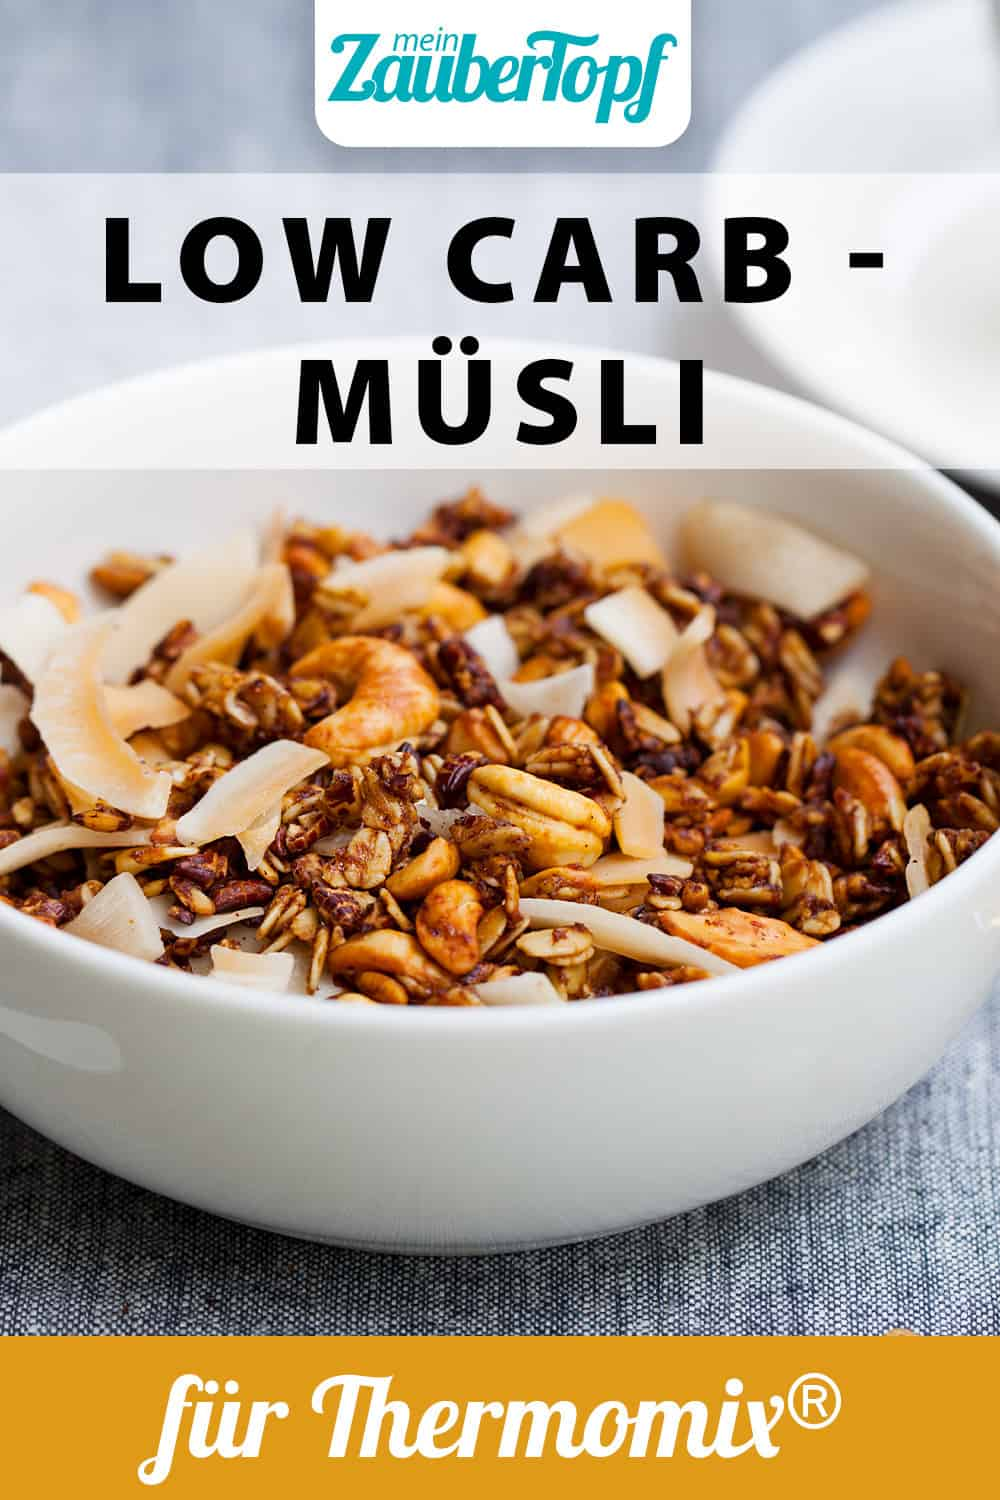 Low Carb Müsli aus dem Thermomix® - Foto: gettyimages / AnnaPustynnikova